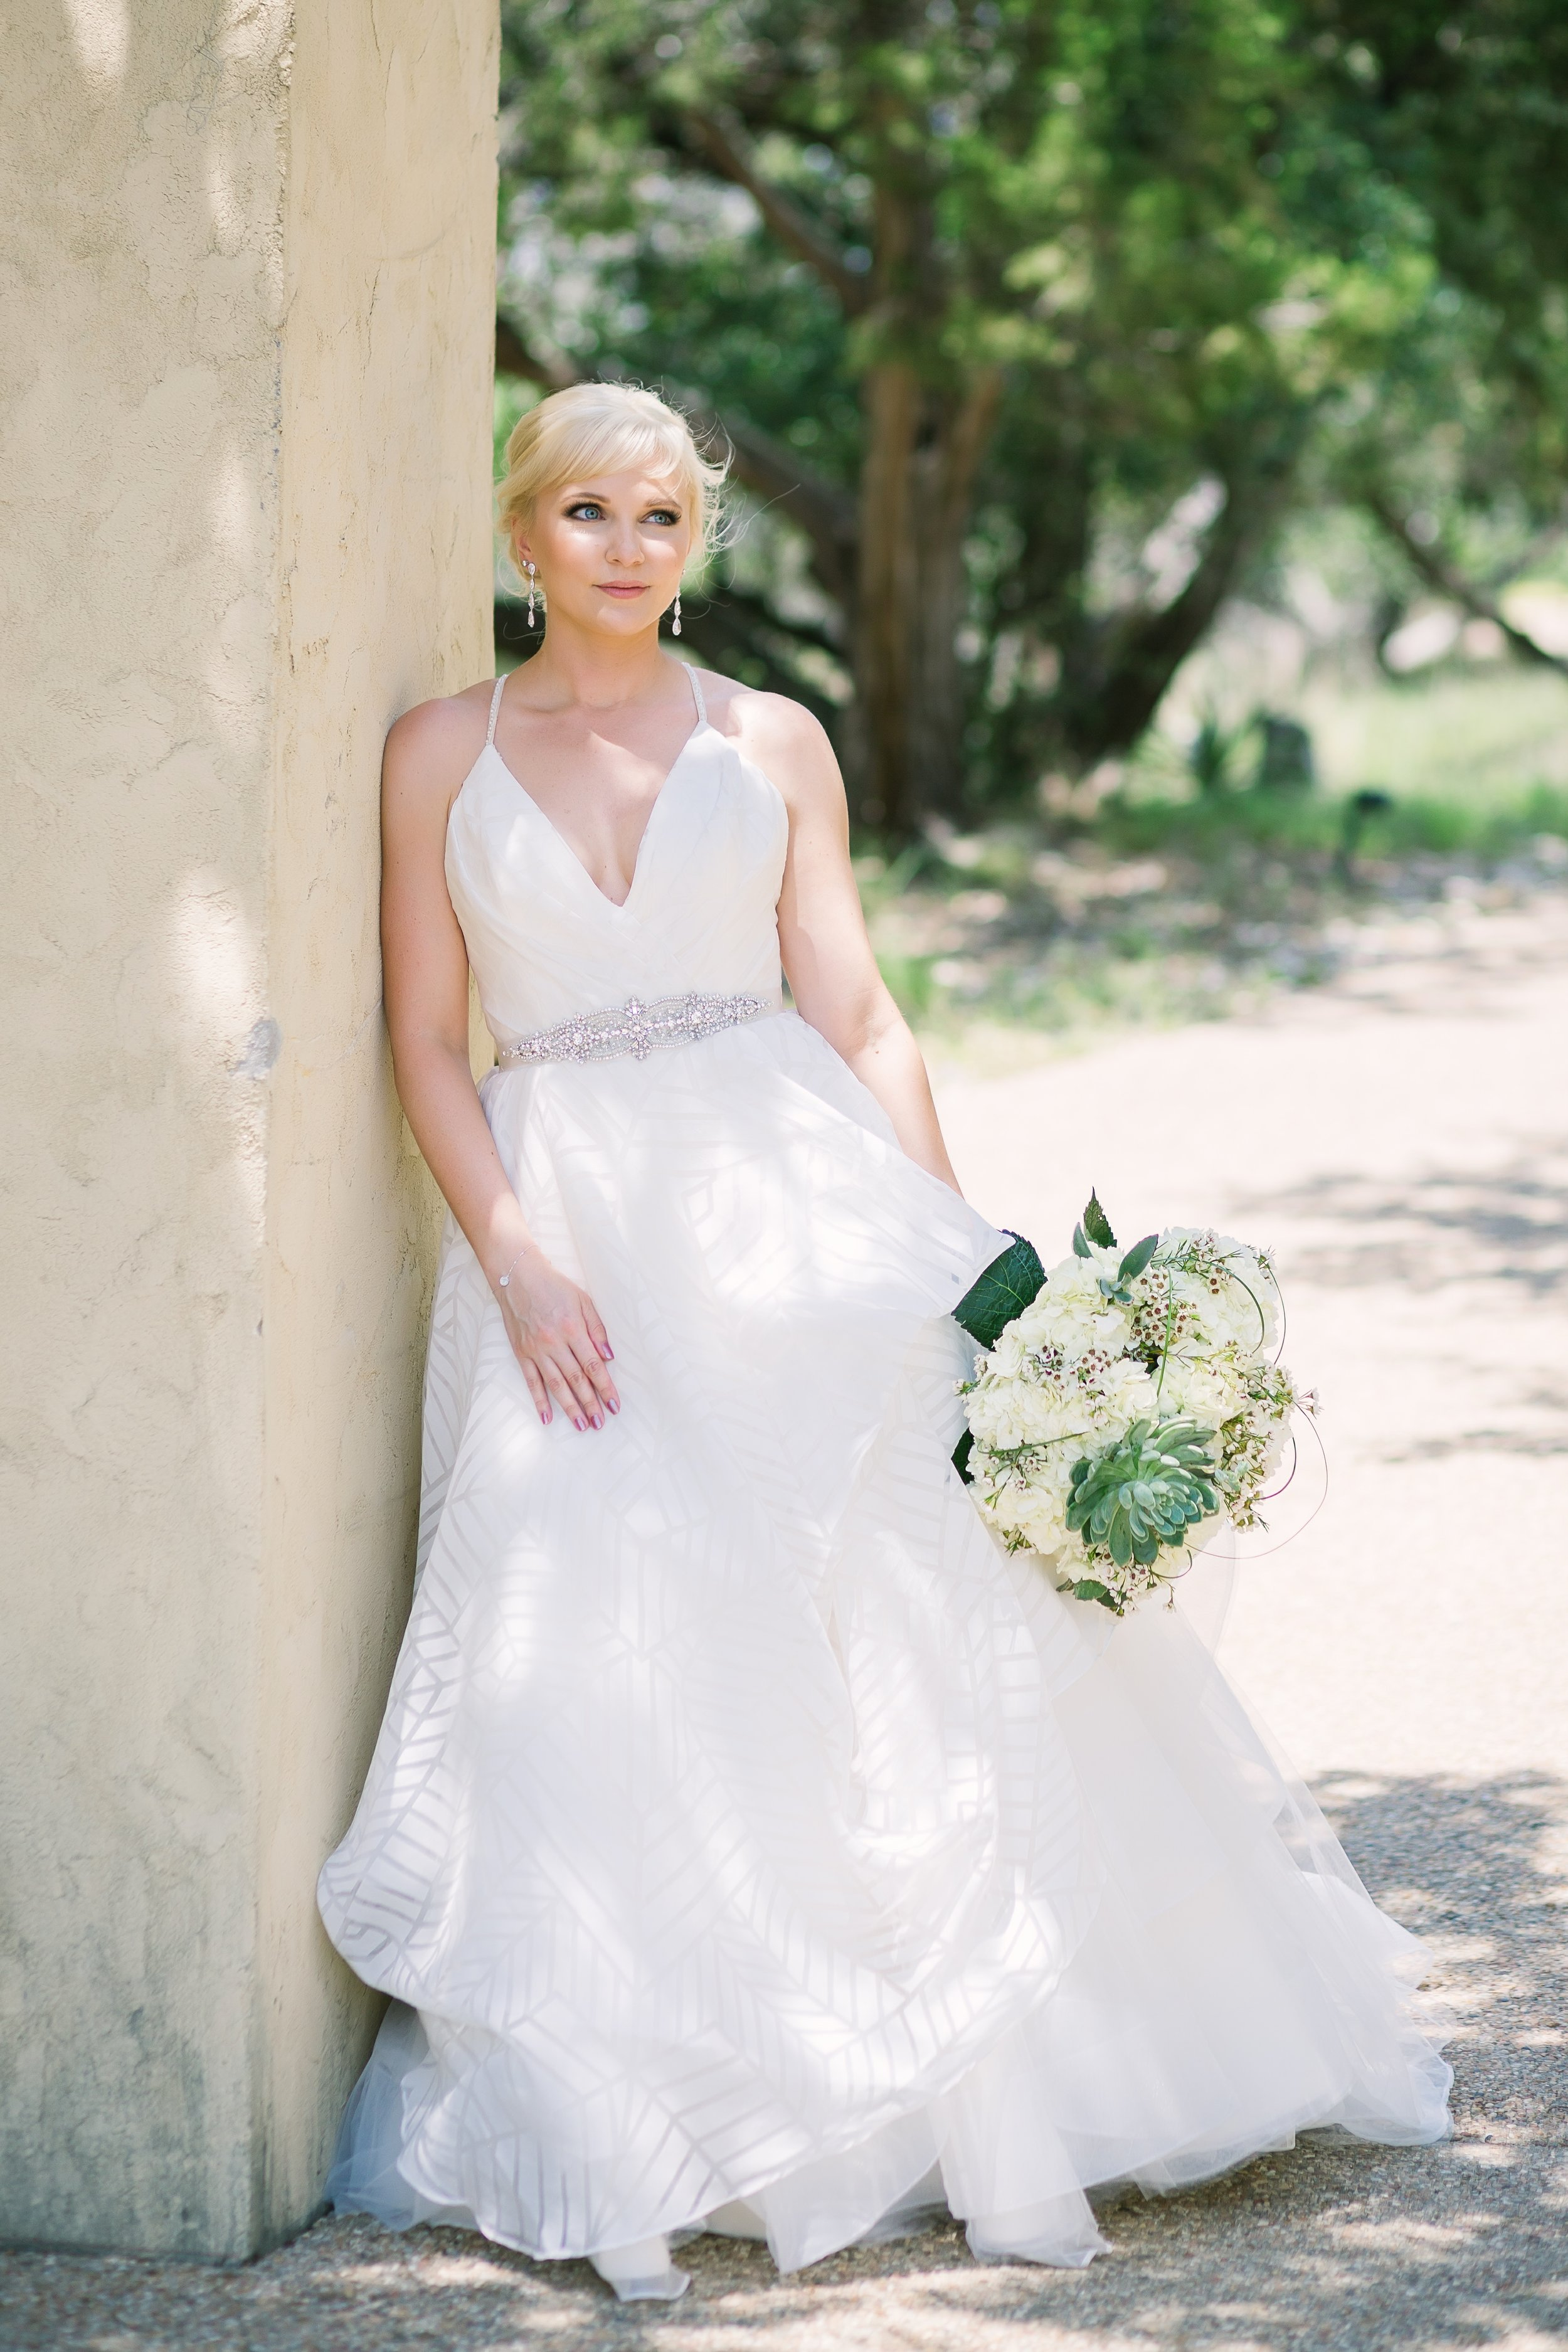 Bridal Portraits at Chapel Dulcinea in Austin, white bouquet with succulents